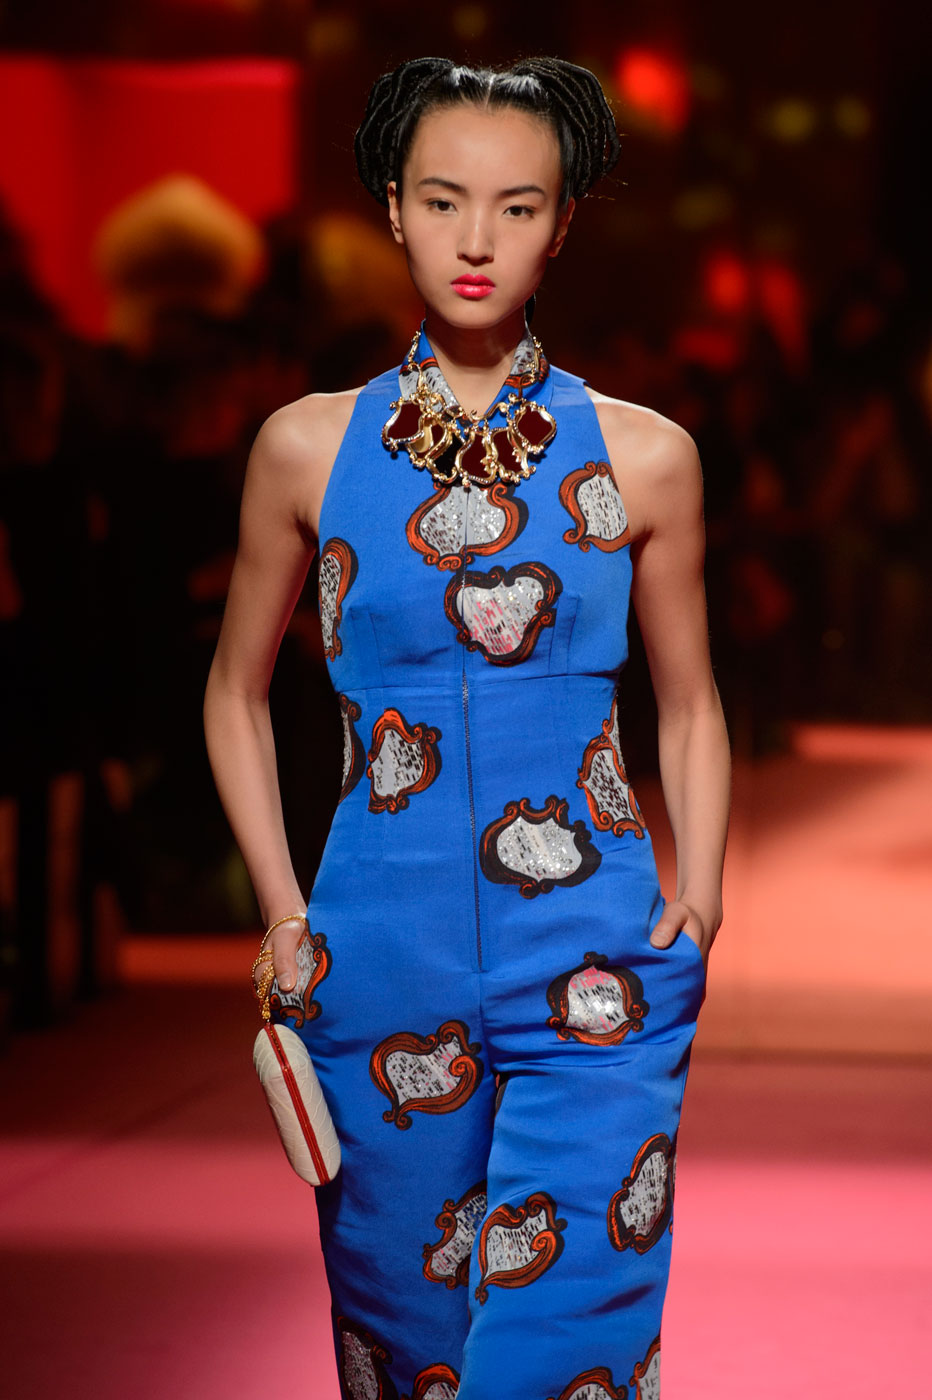 Schiaparelli-fashion-runway-show-haute-couture-paris-spring-summer-2015-the-impression-35